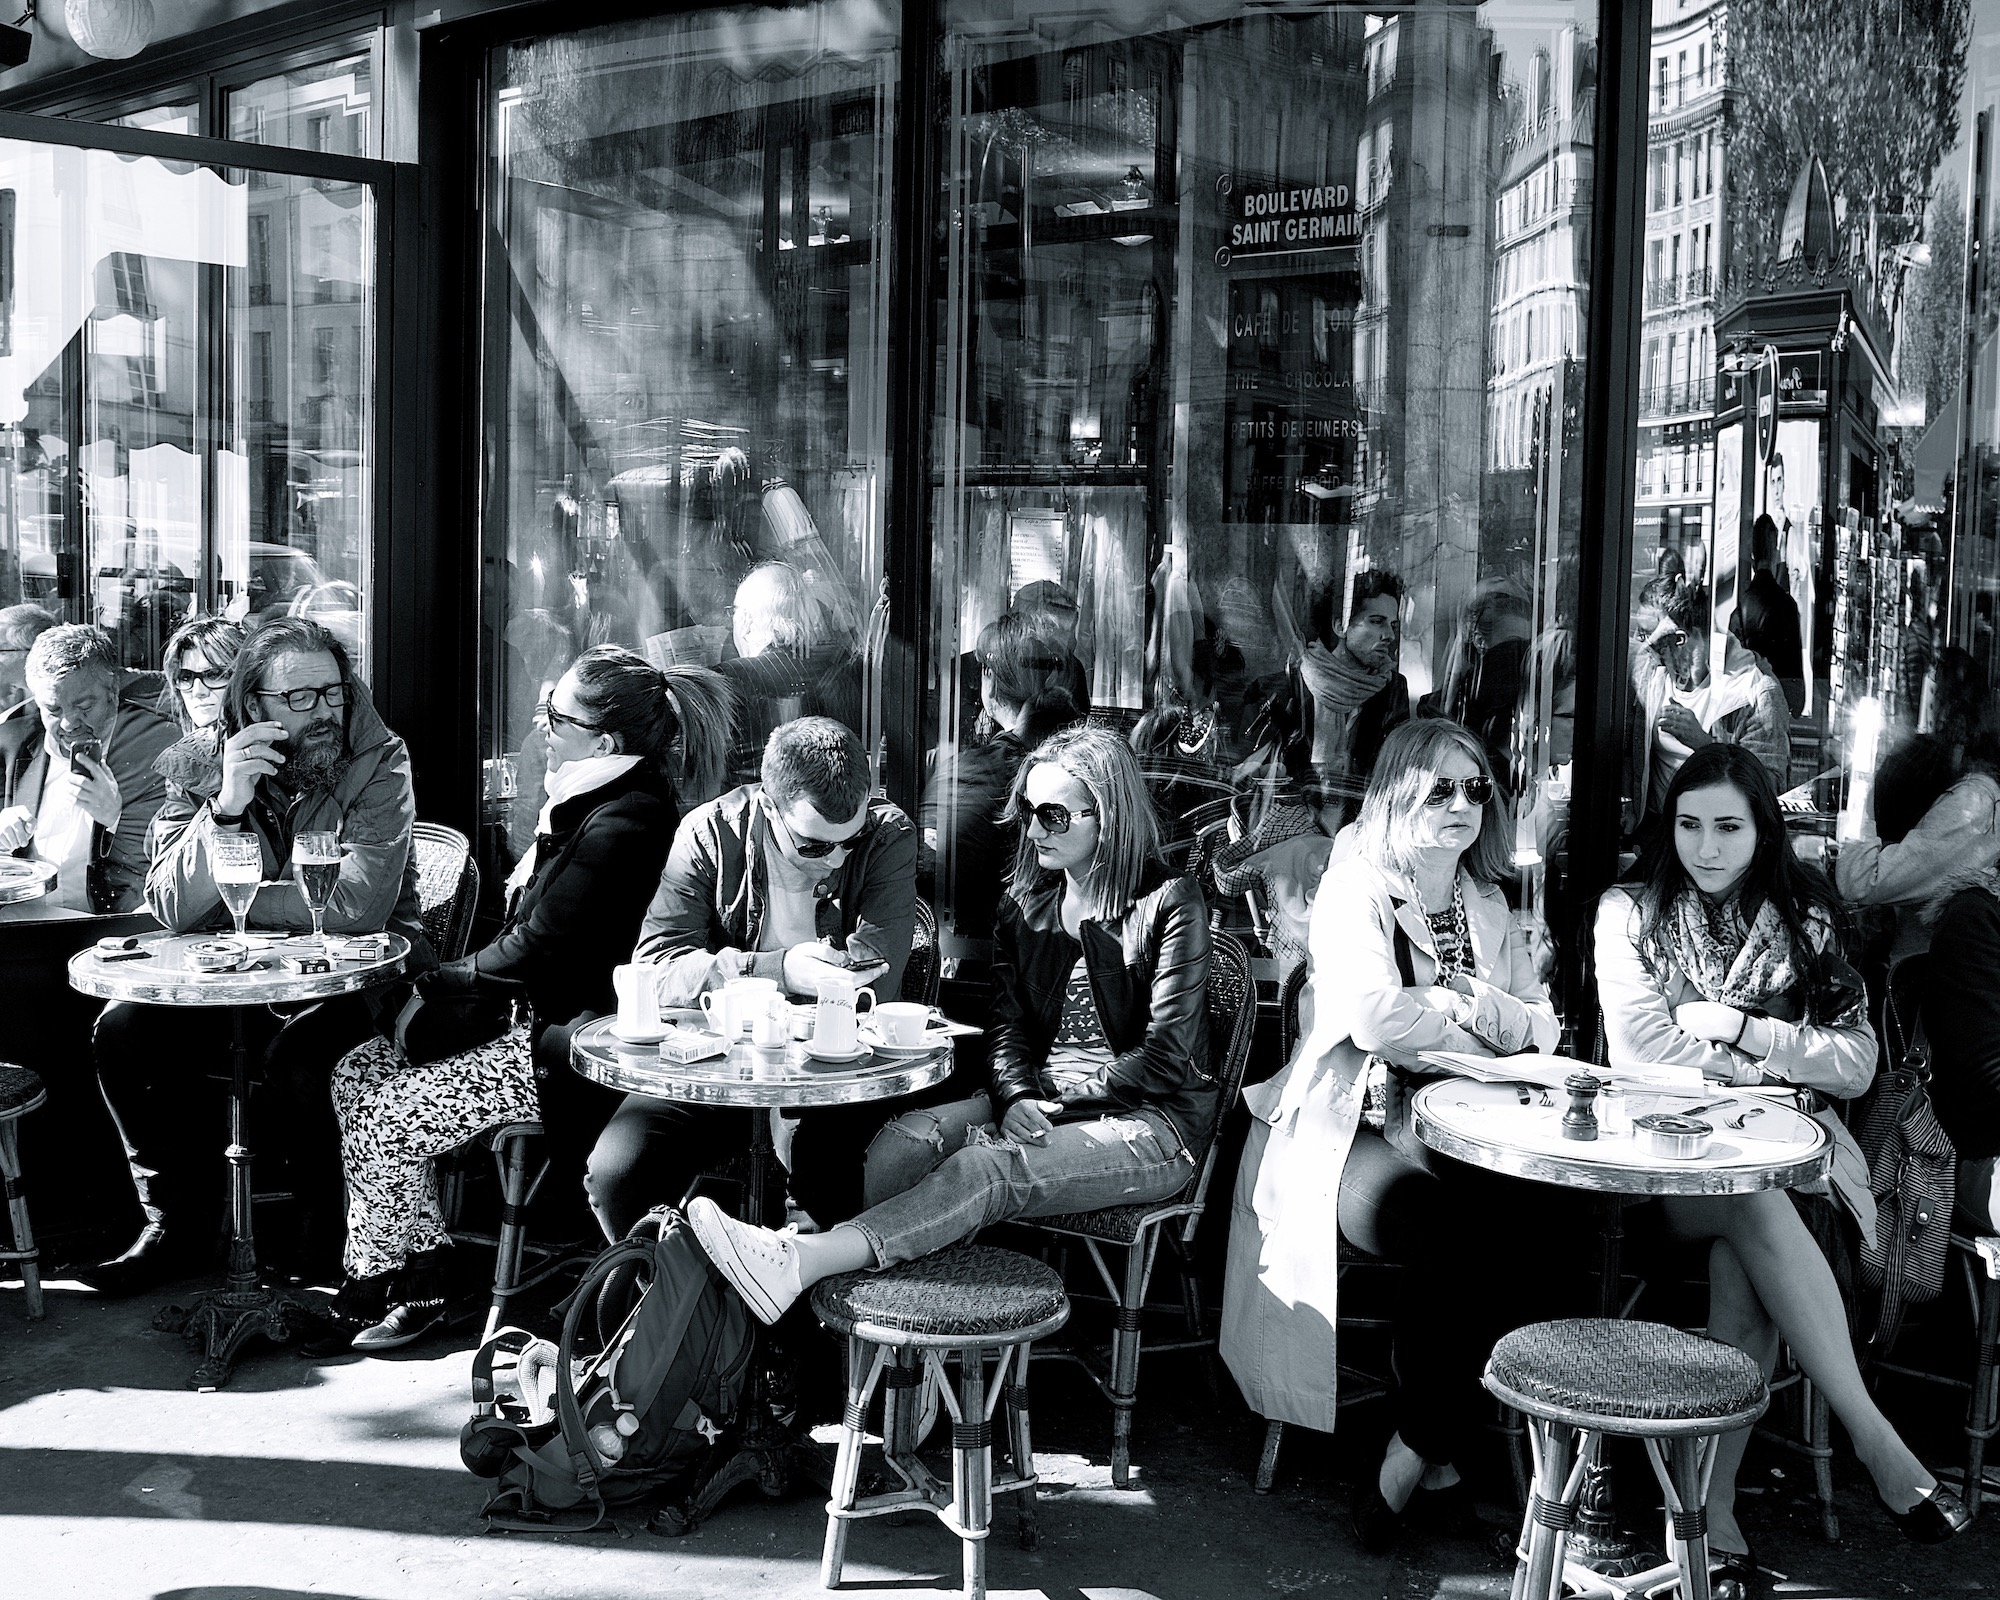 The main difference between French and Italian coffee culture is the café terraces of Paris where everyone loves to sit and watch the world go by.